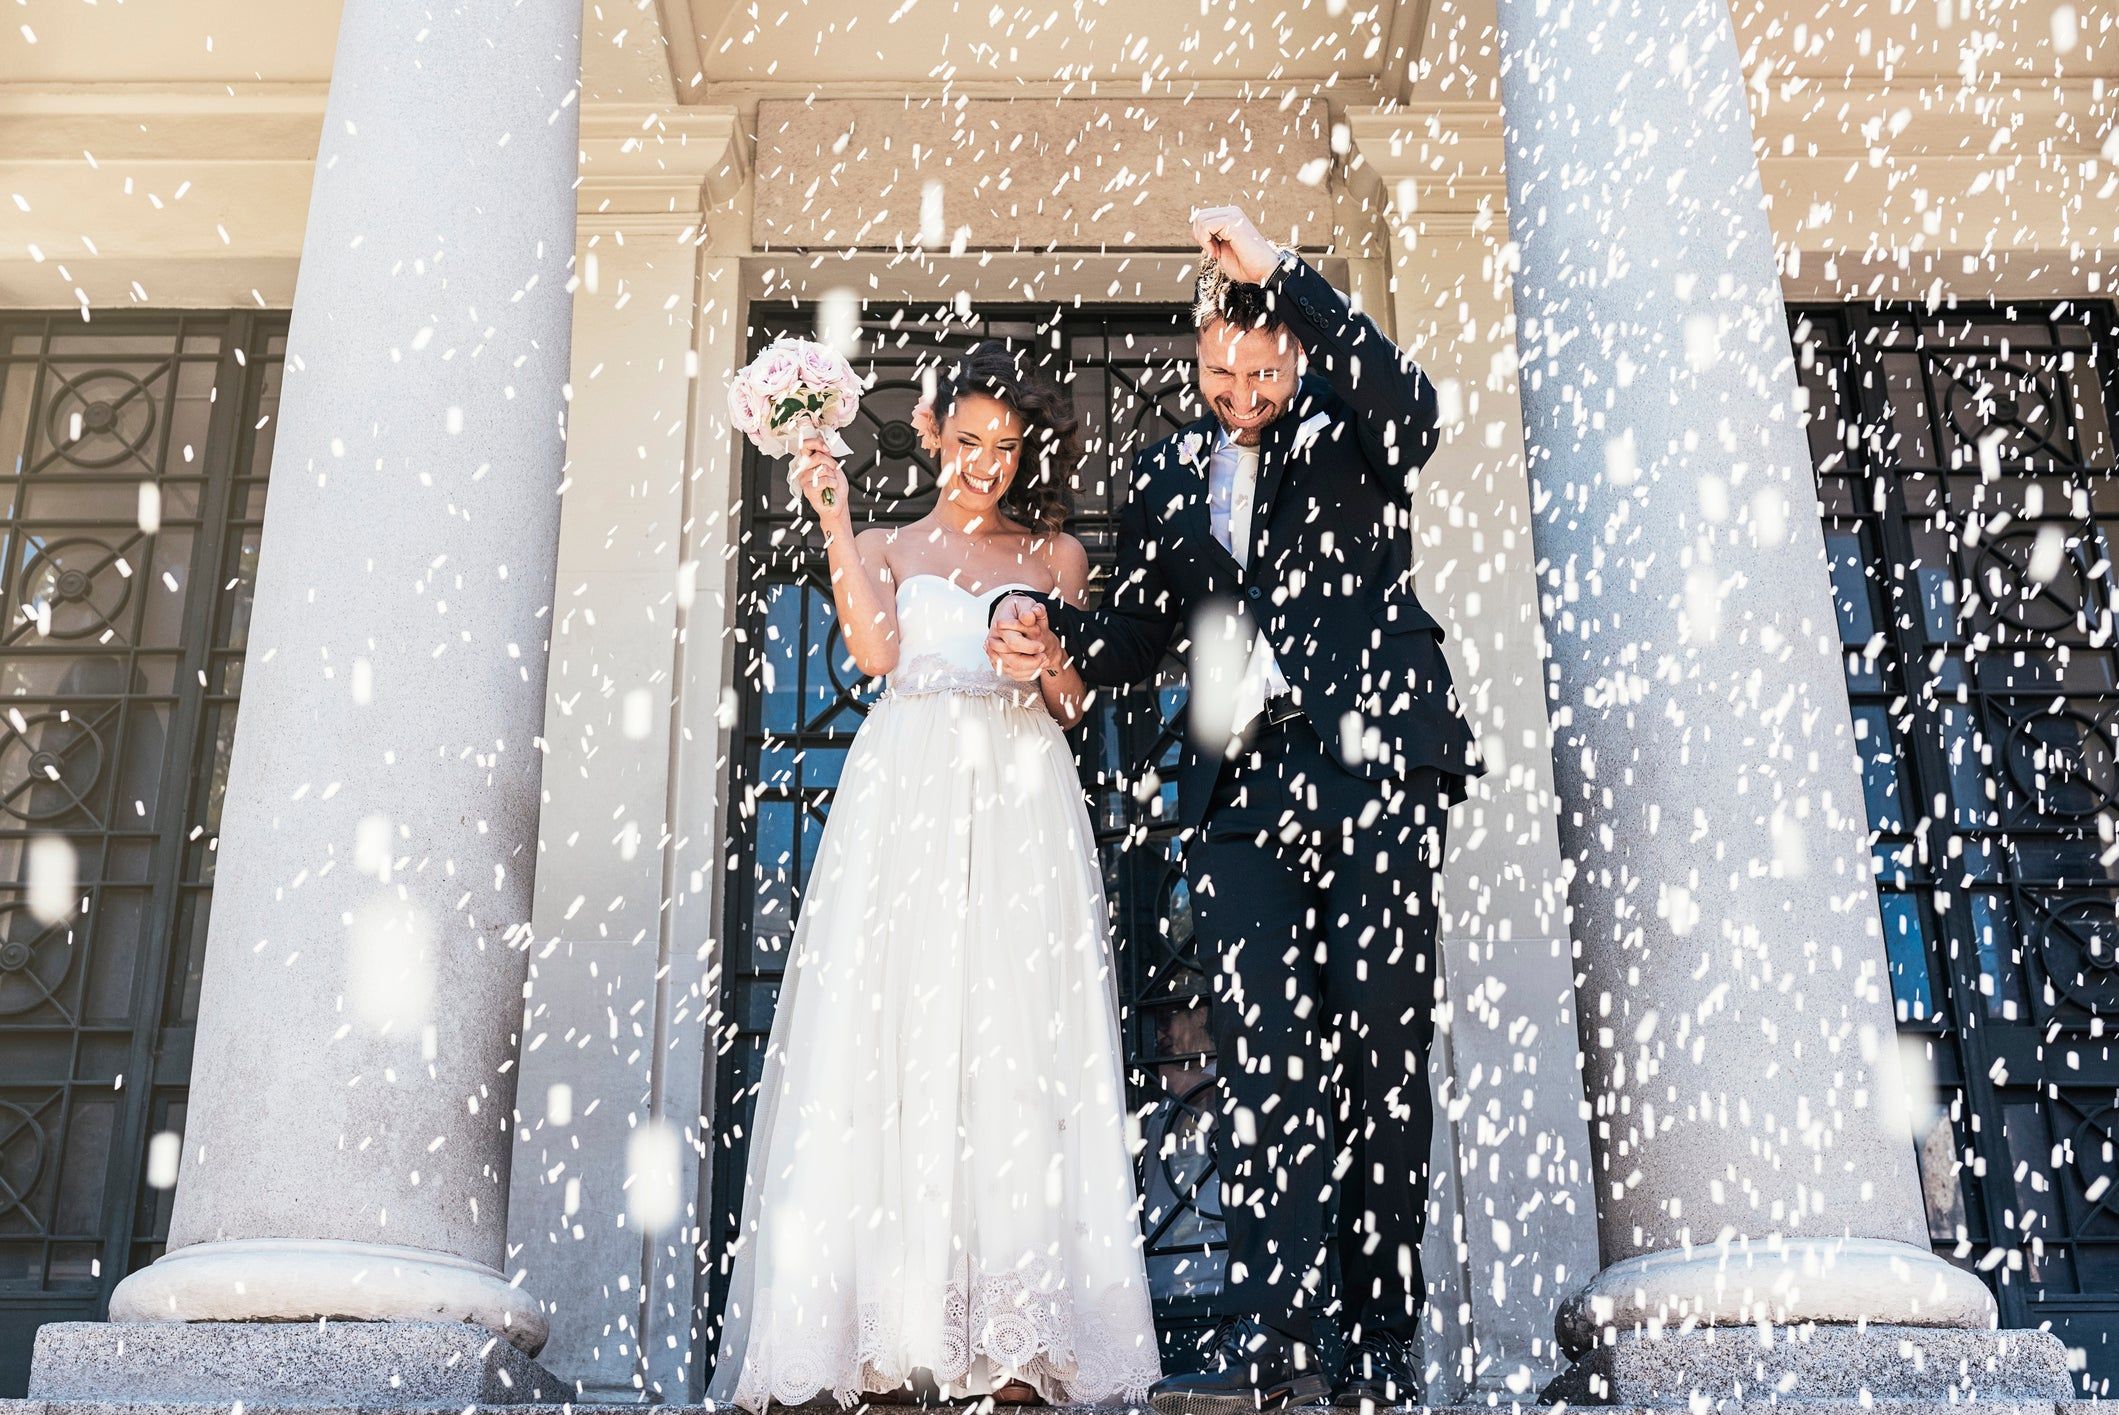 Here S How Much The Average Wedding Costs Though You Can Pay Less Motley Fool